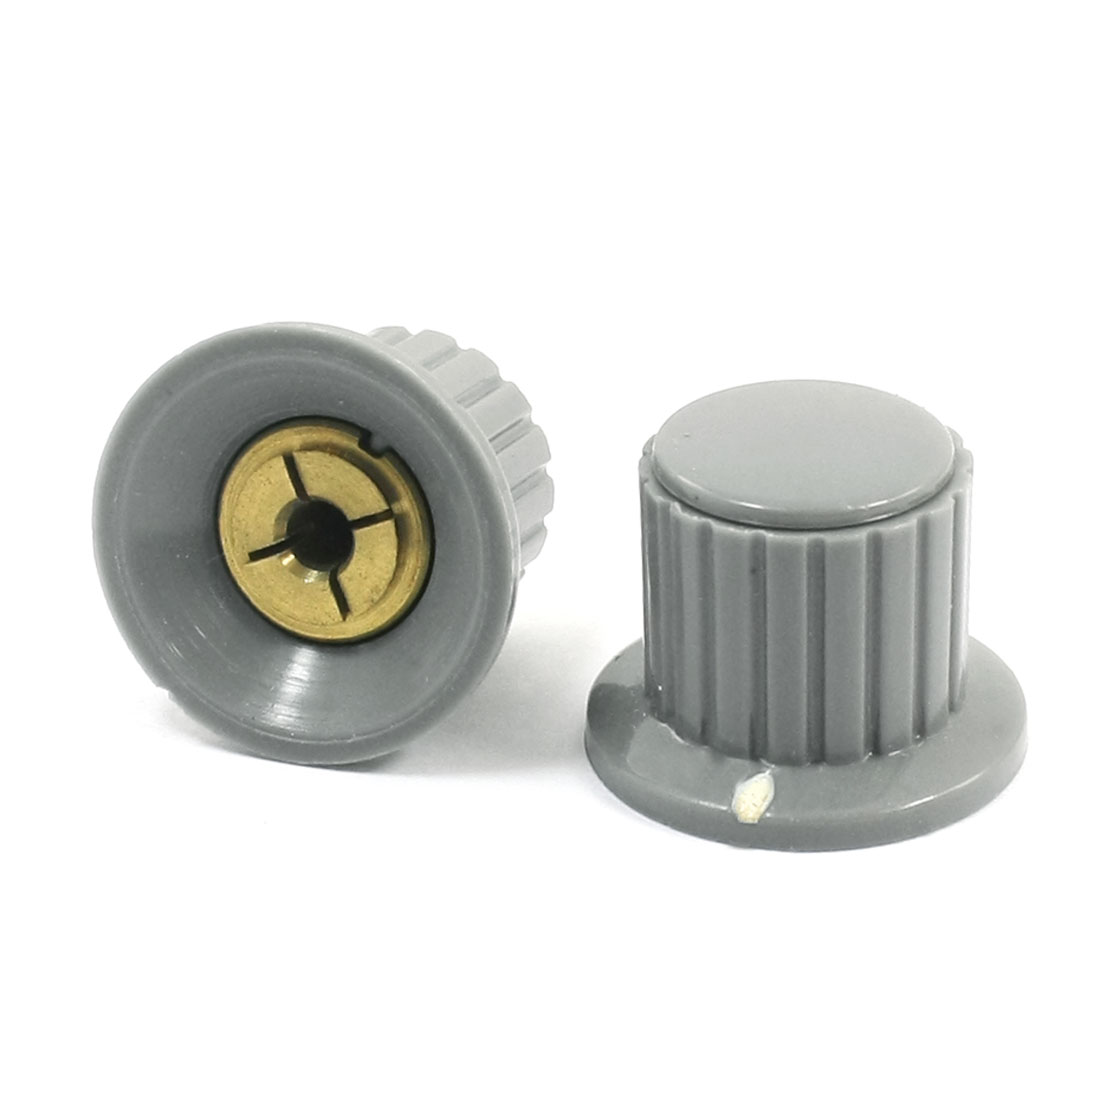 2pcs Ribbed Grip 4mm Split Shaft Volume Knob KYP25-18-4 for Potentiometer Pot